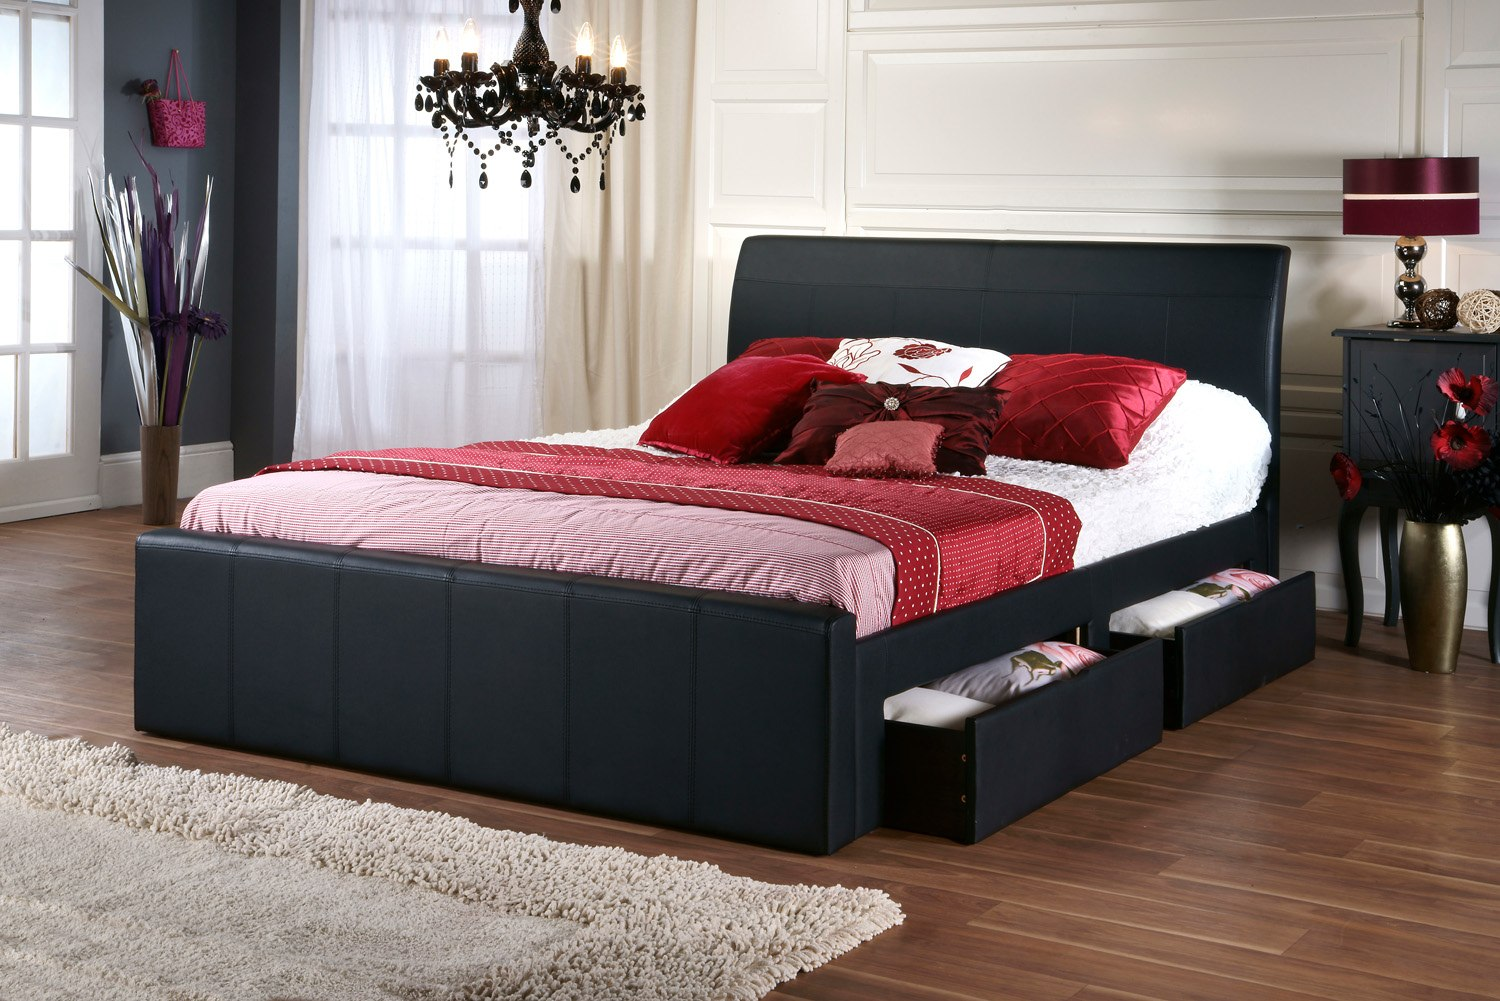 Dreamland sophia white faux leather bed frame the world of beds - Black leather bed with drawers ...